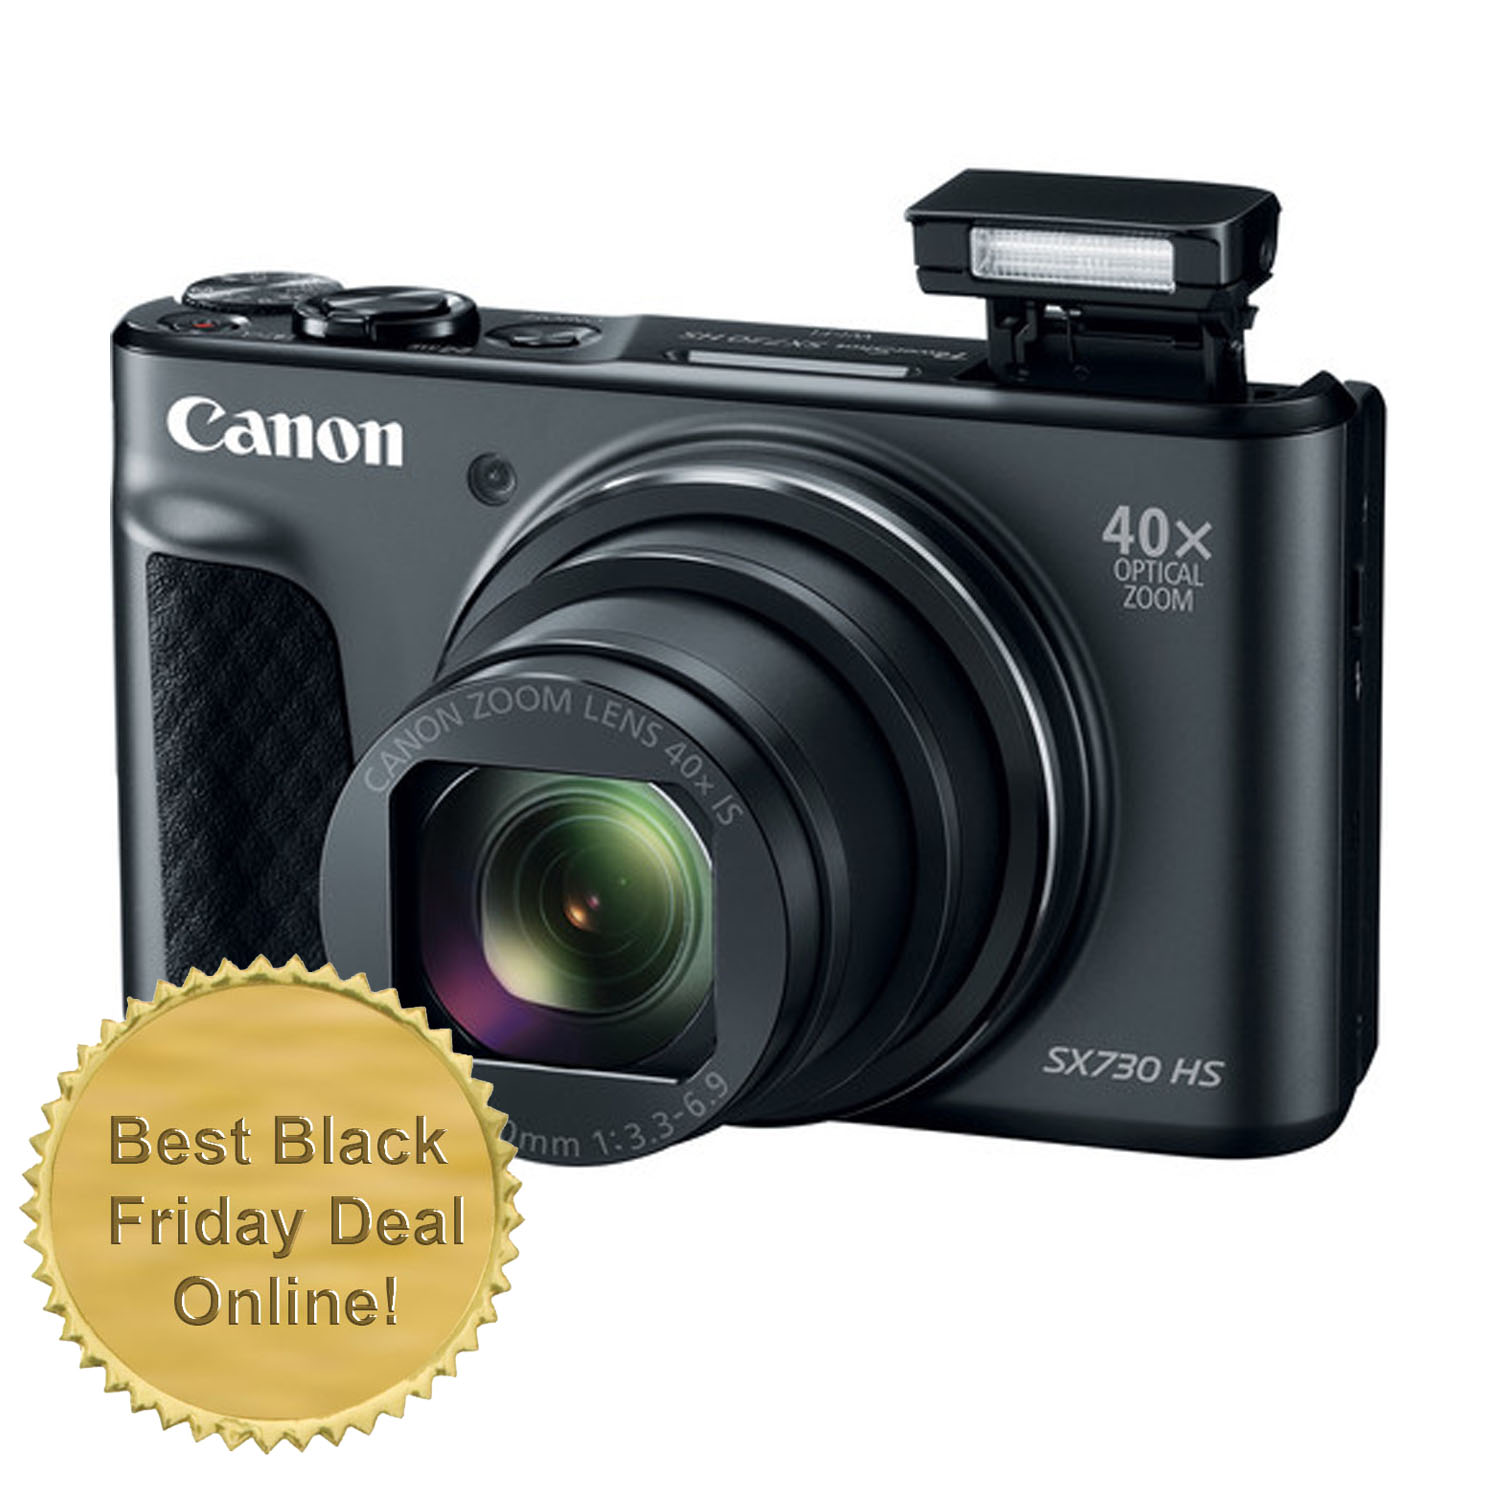 Canon PowerShot SX730 20.3MP Wifi Digital Camera Black - Best Black Friday Deal